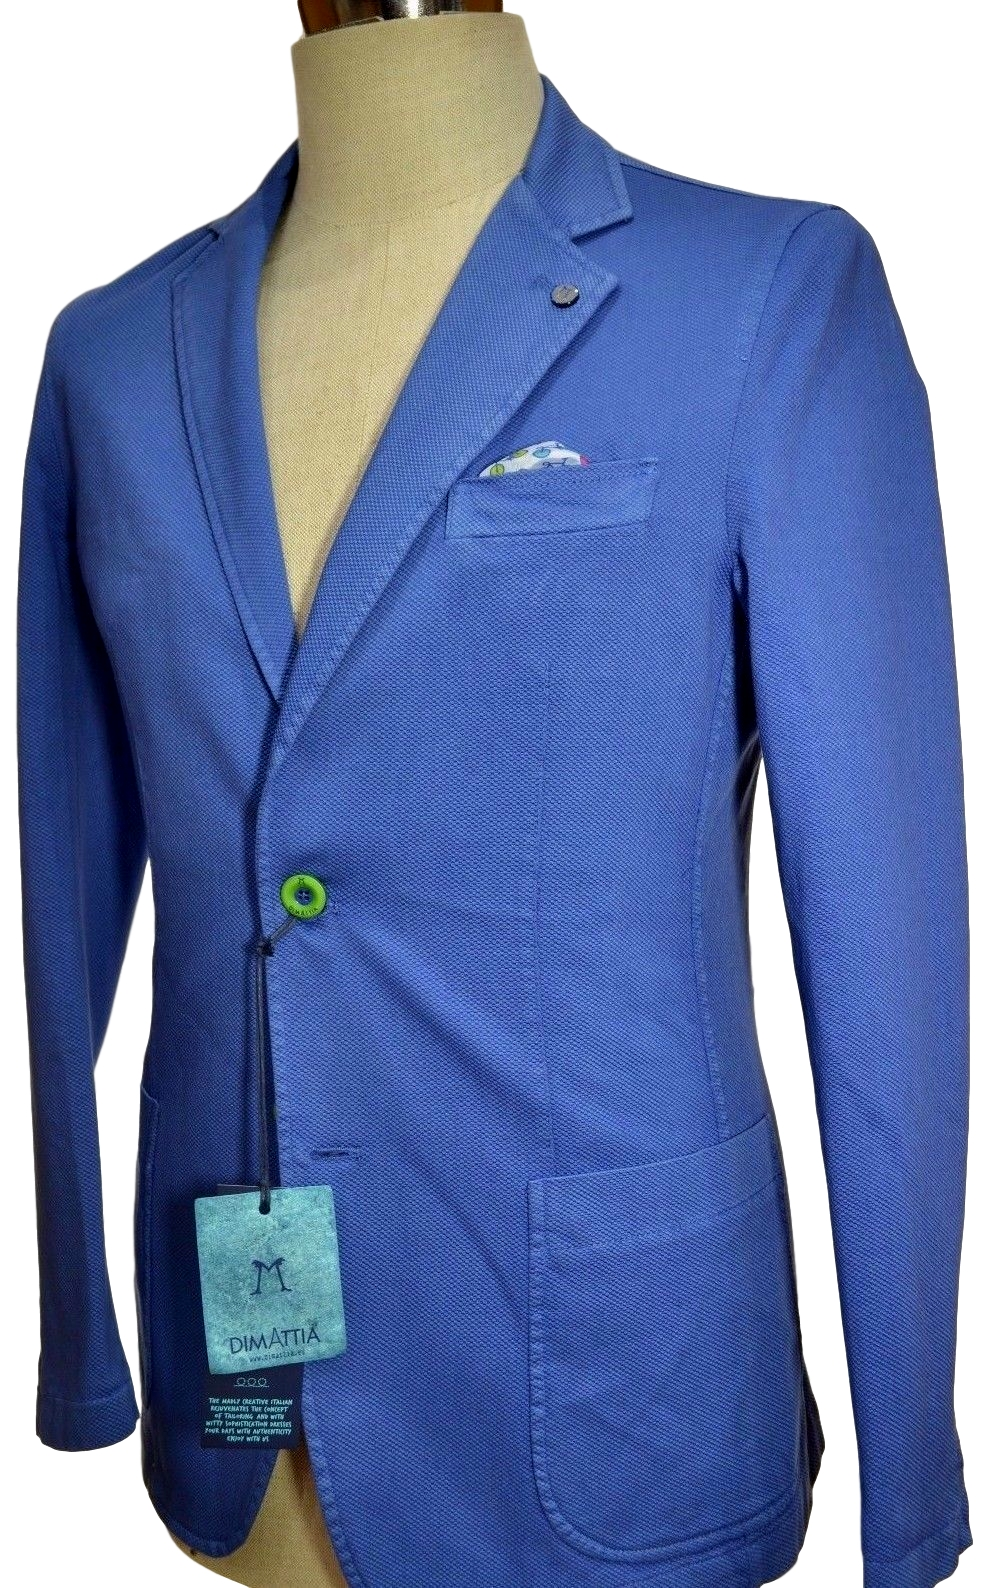 DIMATTIA GIACCA UOMO TG. 48 SLIM FIT PRINCE PIQUET MADE IN ITALY